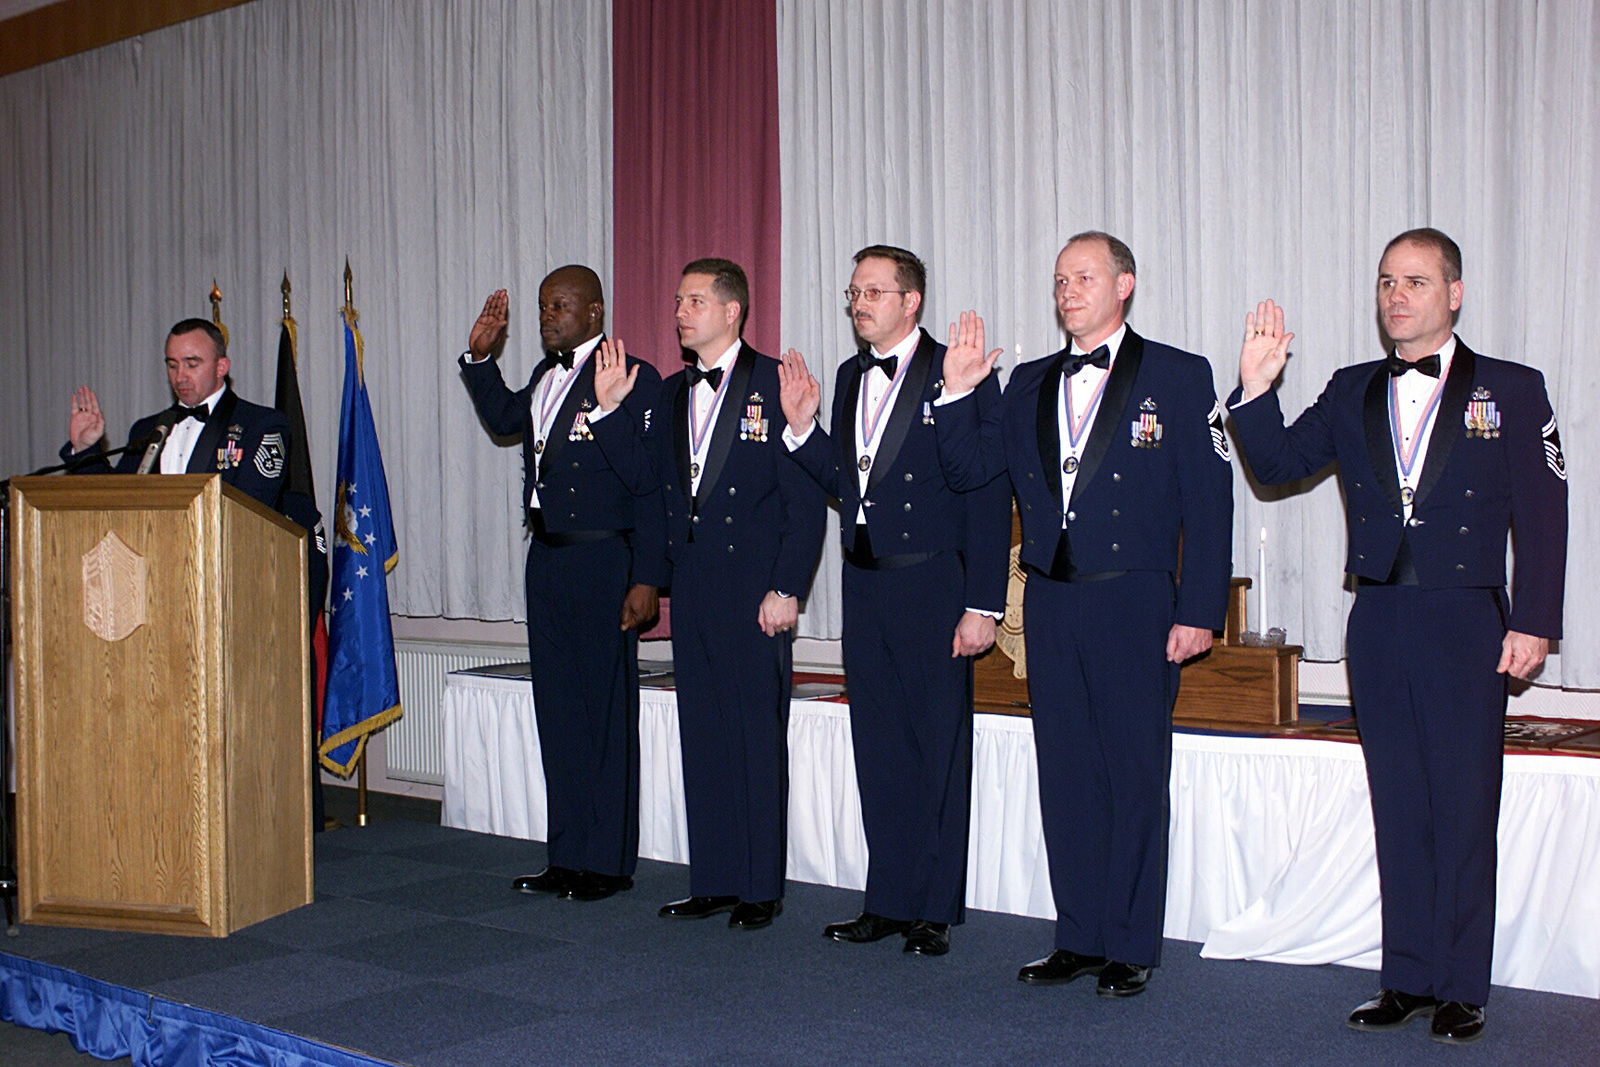 US Air Force (USAF) Command CHIEF MASTER Sergeant (CCMSGT) Kenneth J. McQuiston (left), 52nd Fighter Wing (FW), Spangdahlem Air Base (AB), Germany, recites the CHIEF's Creed to five USAF CHIEF MASTER Sergeant (CMSGT) selectees during the CHIEF MASTER Sergeant Induction ceremony. The new CMSGTs are from left to right: S) Mike Dortch, NATO AWACS, E-3A Component, Training Wing, Geilenkirchen AB, Germany, S) Todd W. Barnes, 52nd Civil Engineer Squadron (CES), Spangdahlem AB, Germany, S) Roger A. Schwenneker, 52nd Aircraft Maintenance Squadron (AMS), Spangdahlem AB, Germany, S) Edwin A. Blake, 52nd Component Maintenance Squadron (CMS), Spangdahlem AB, Germany, and...